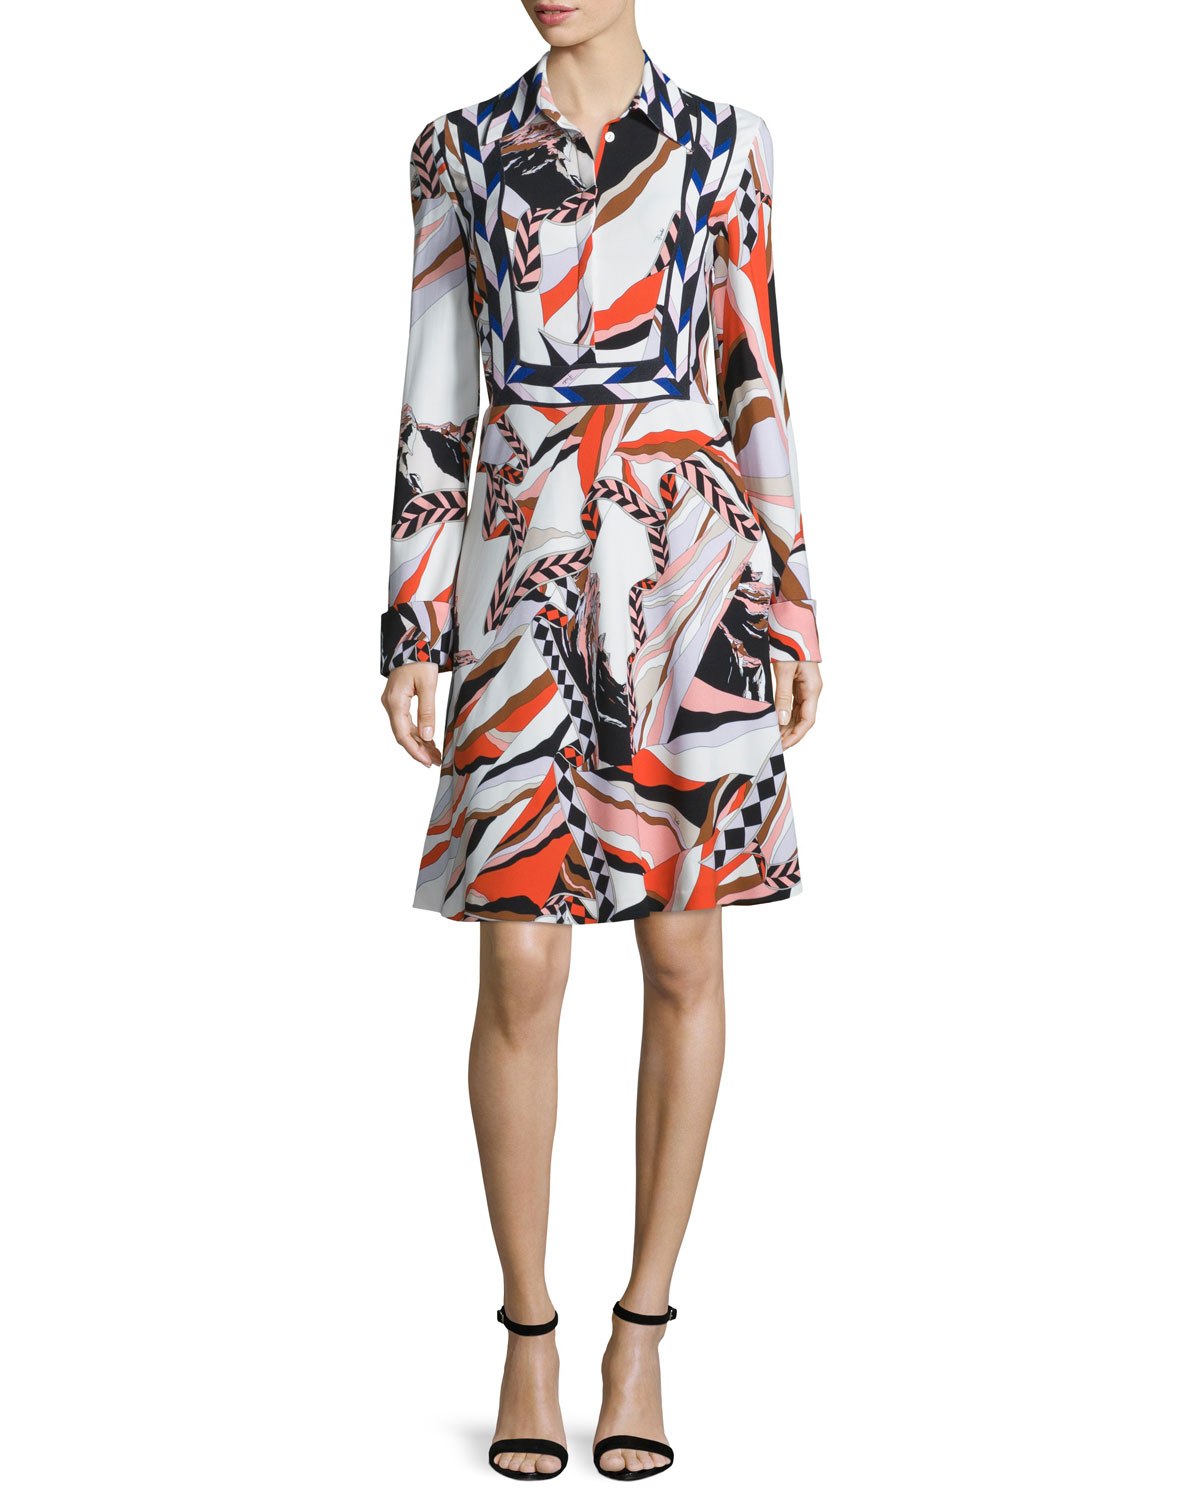 Montagne Long-Sleeve Dress, Multicolor